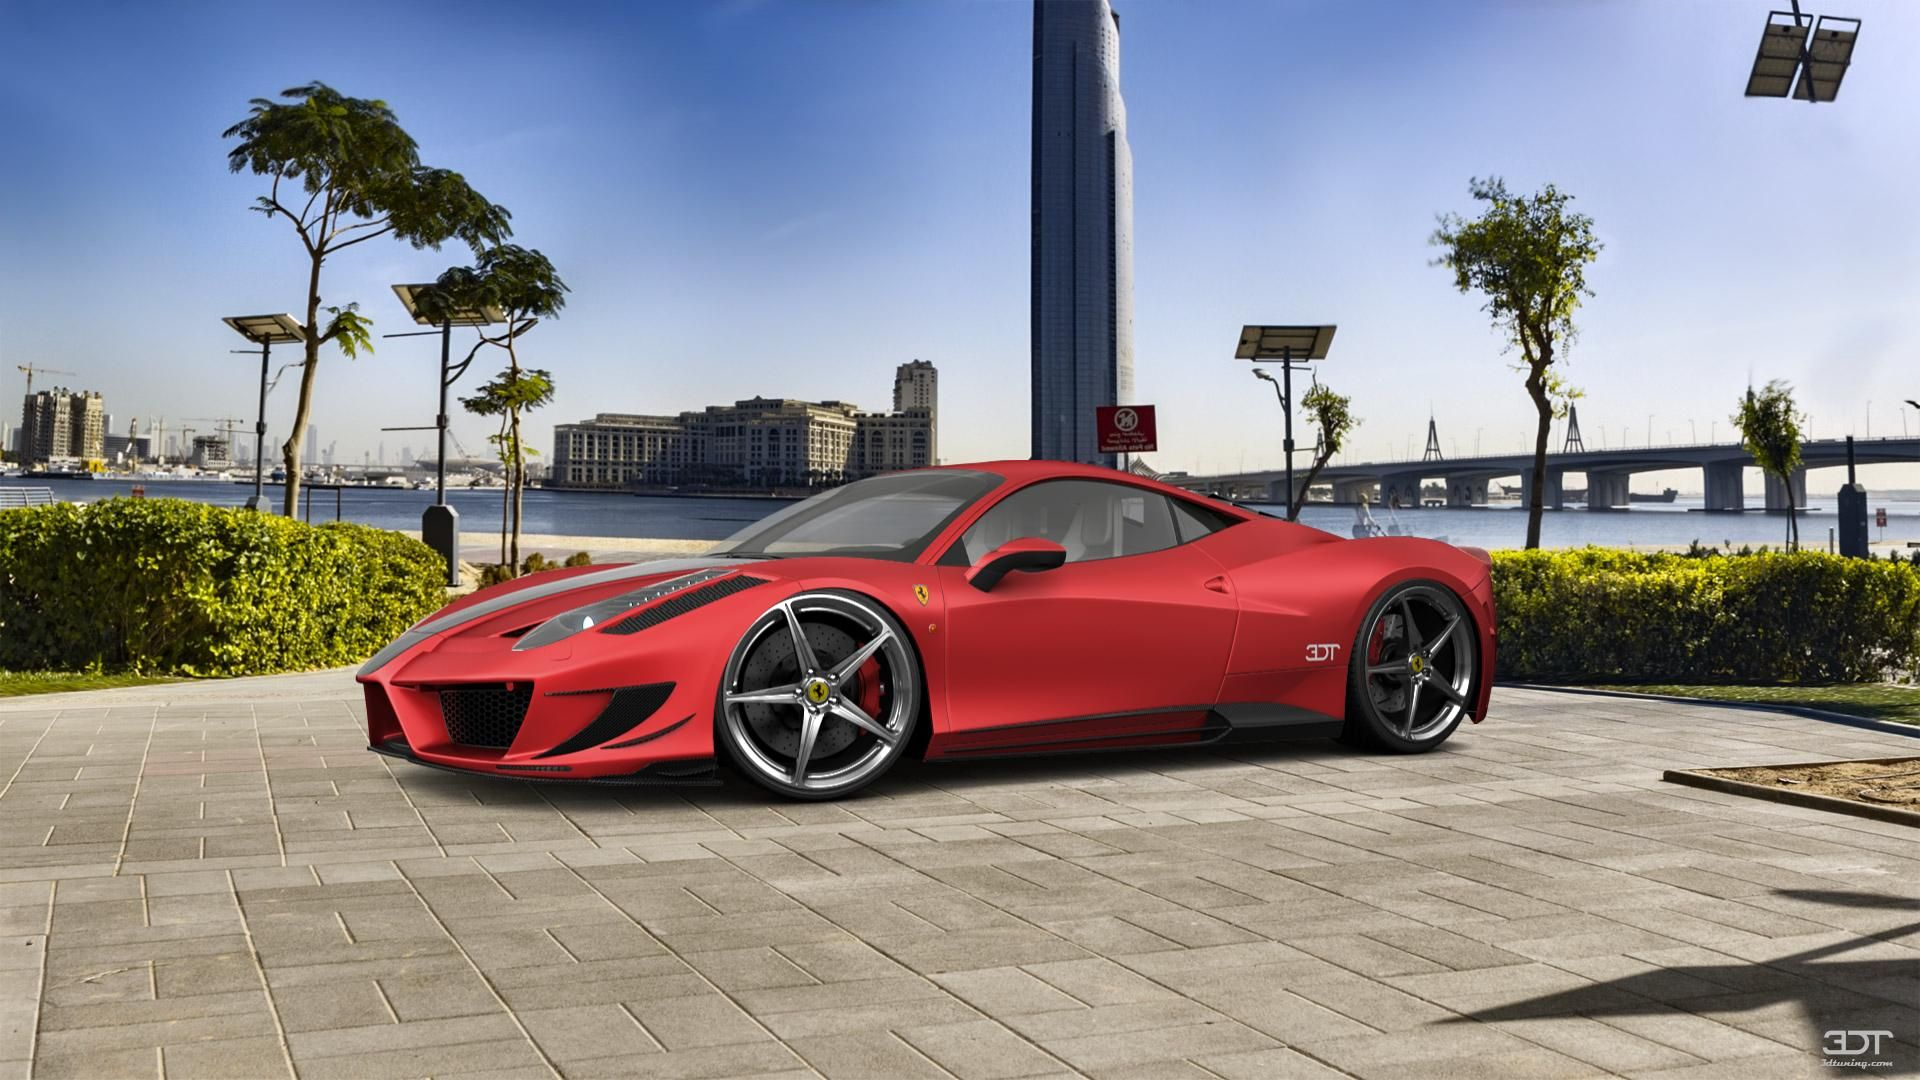 Checkout my tuning 458Italia 2010 at 3DTuning